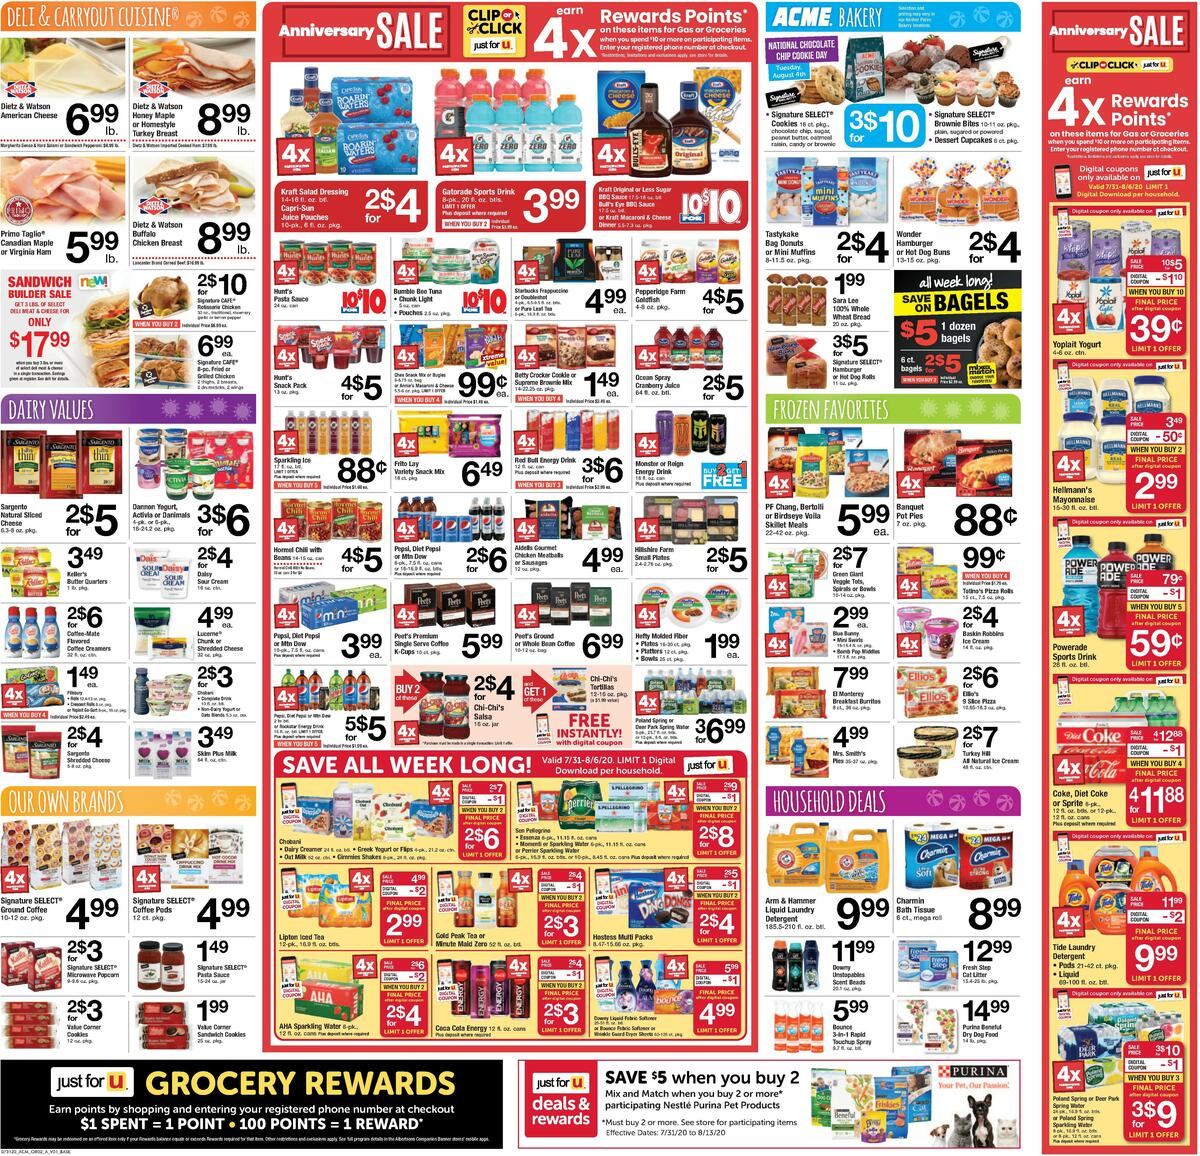 ACME Markets Weekly Ad from July 31